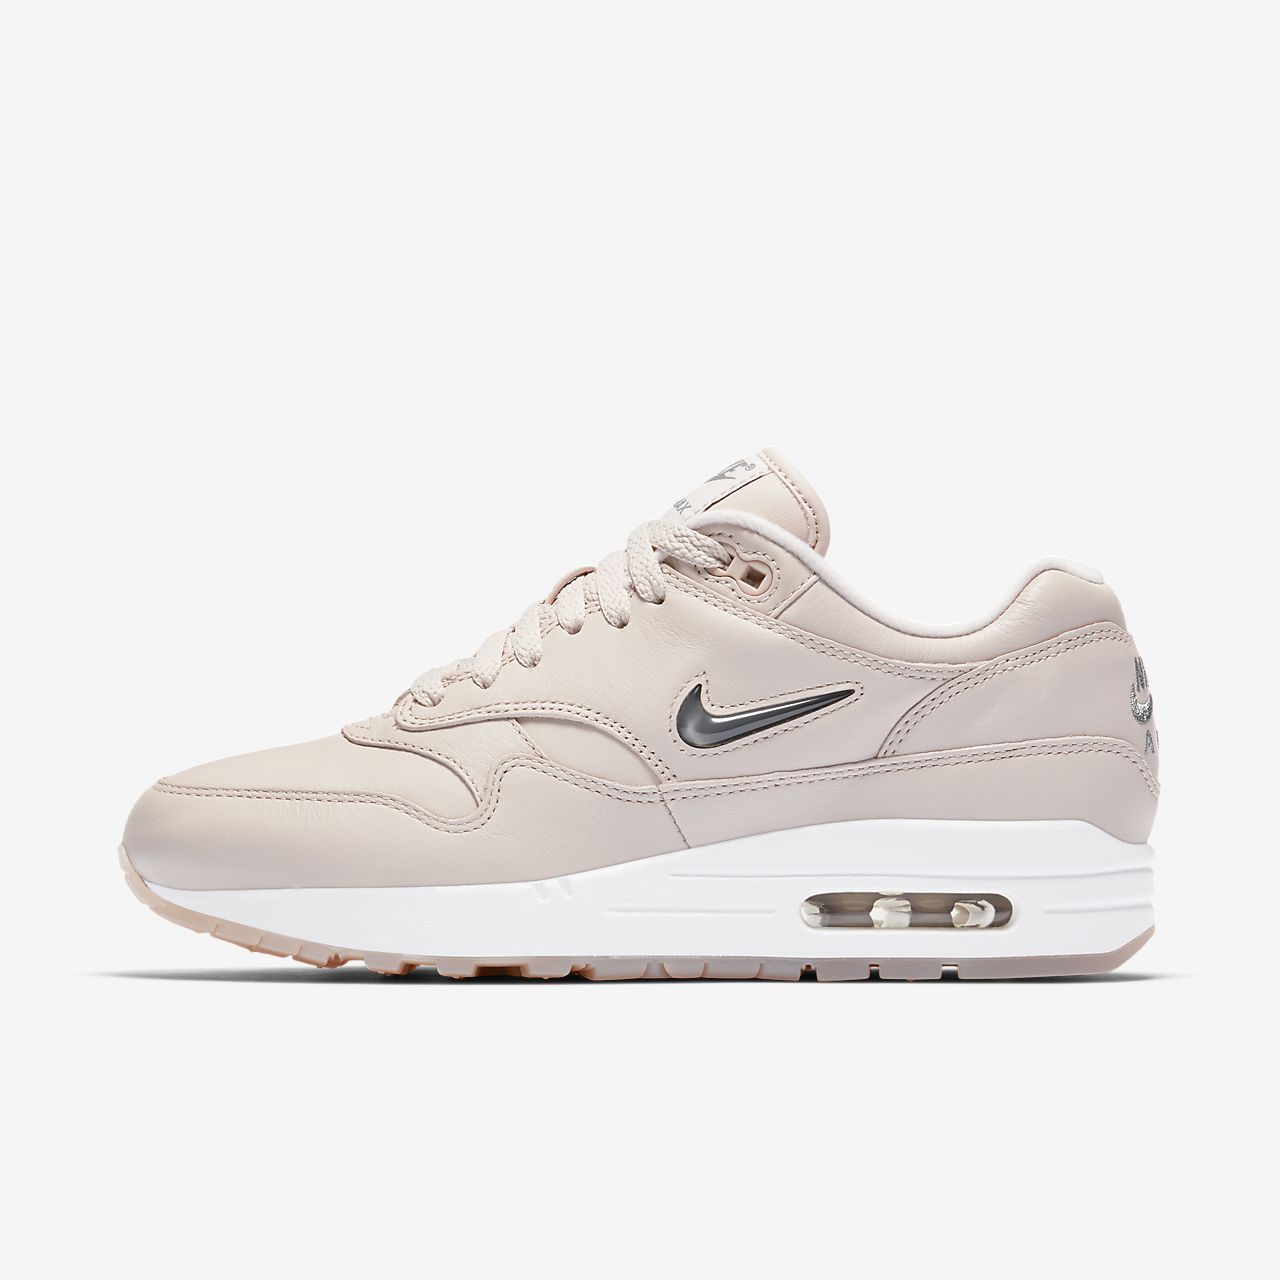 nike air max 1 premium sc women's shoe